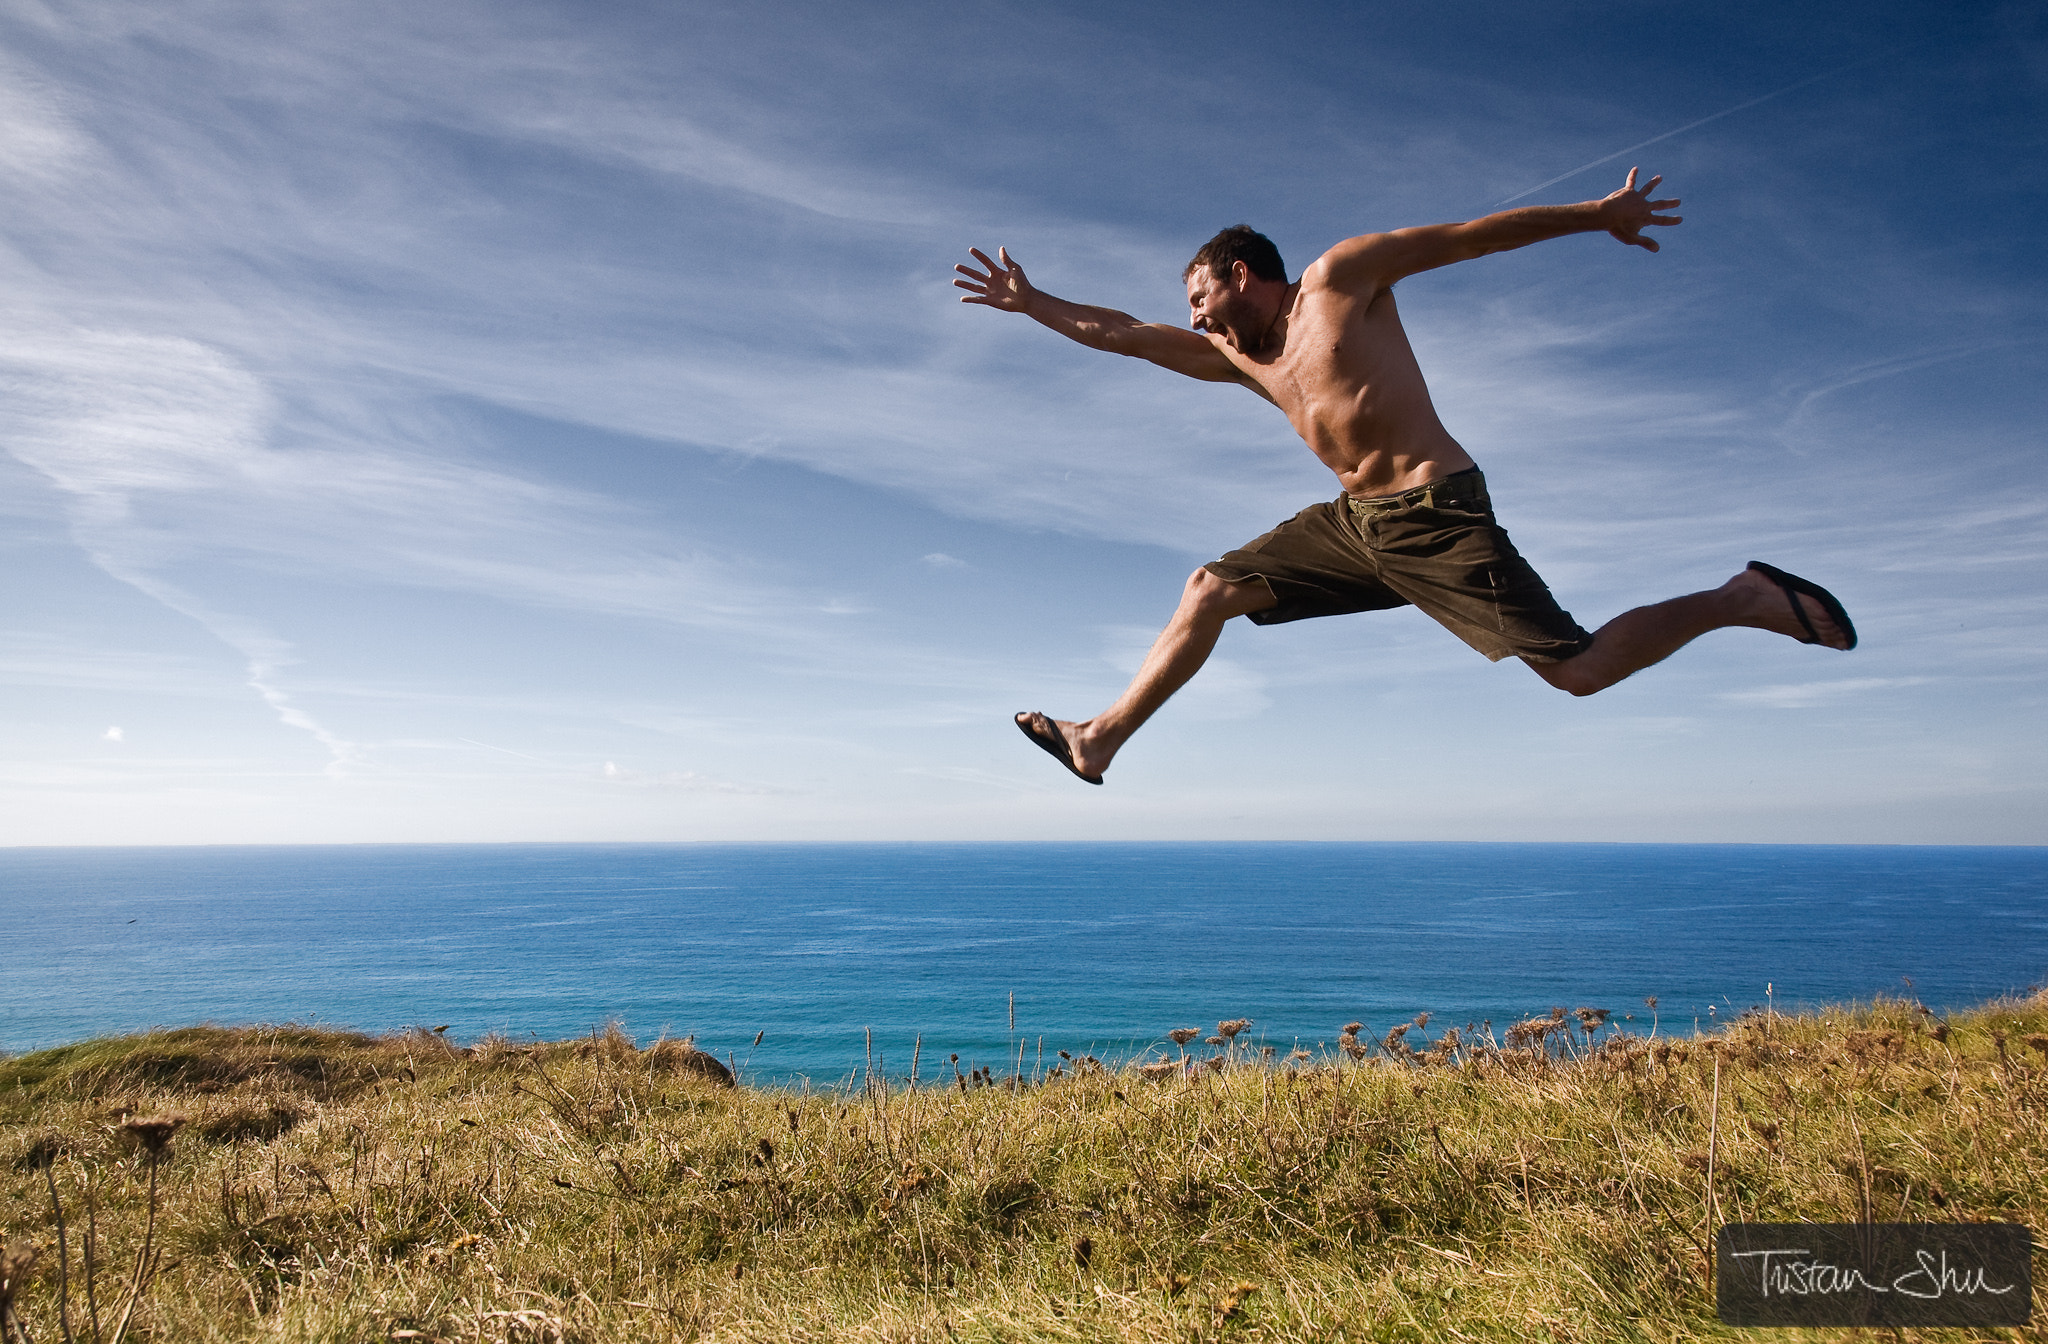 Photograph Jumping ft Paul Lang by Tristan Shu on 500px